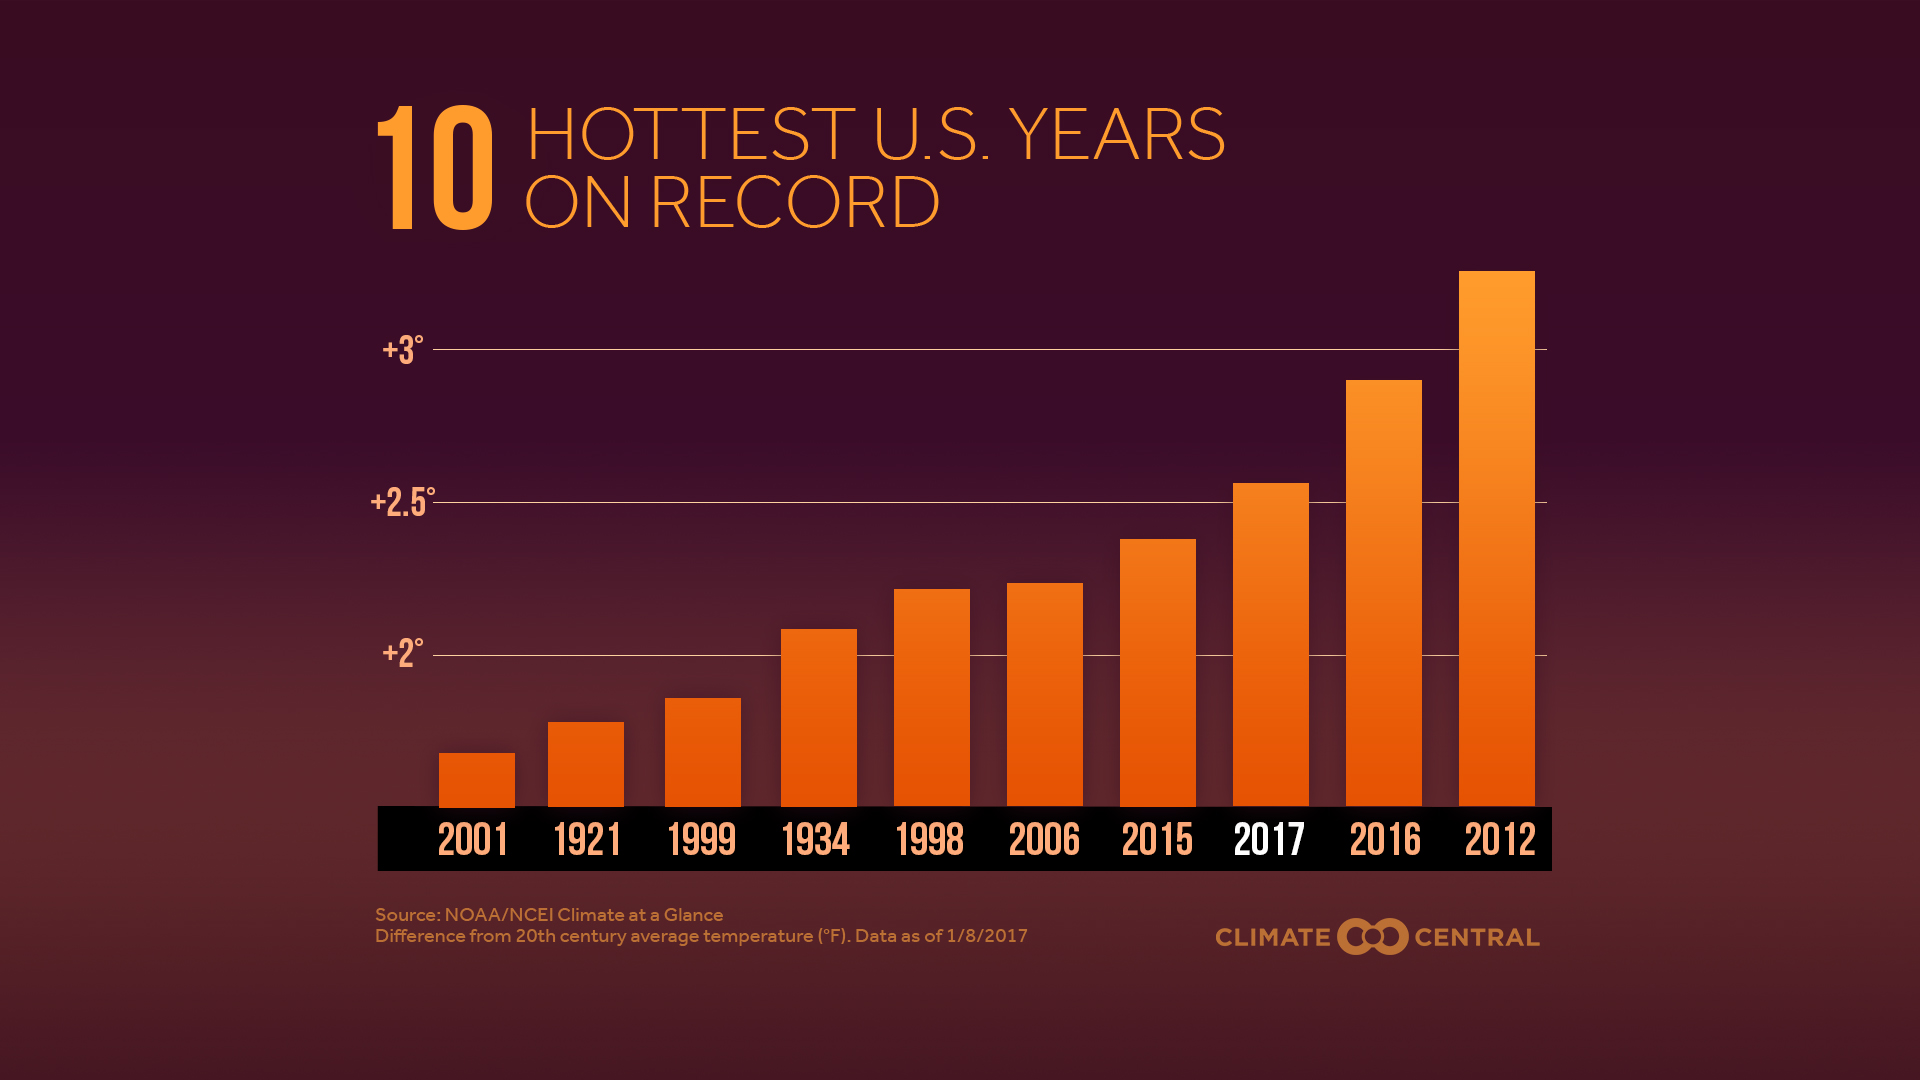 2017 was the third-warmest year on record in the U.S.